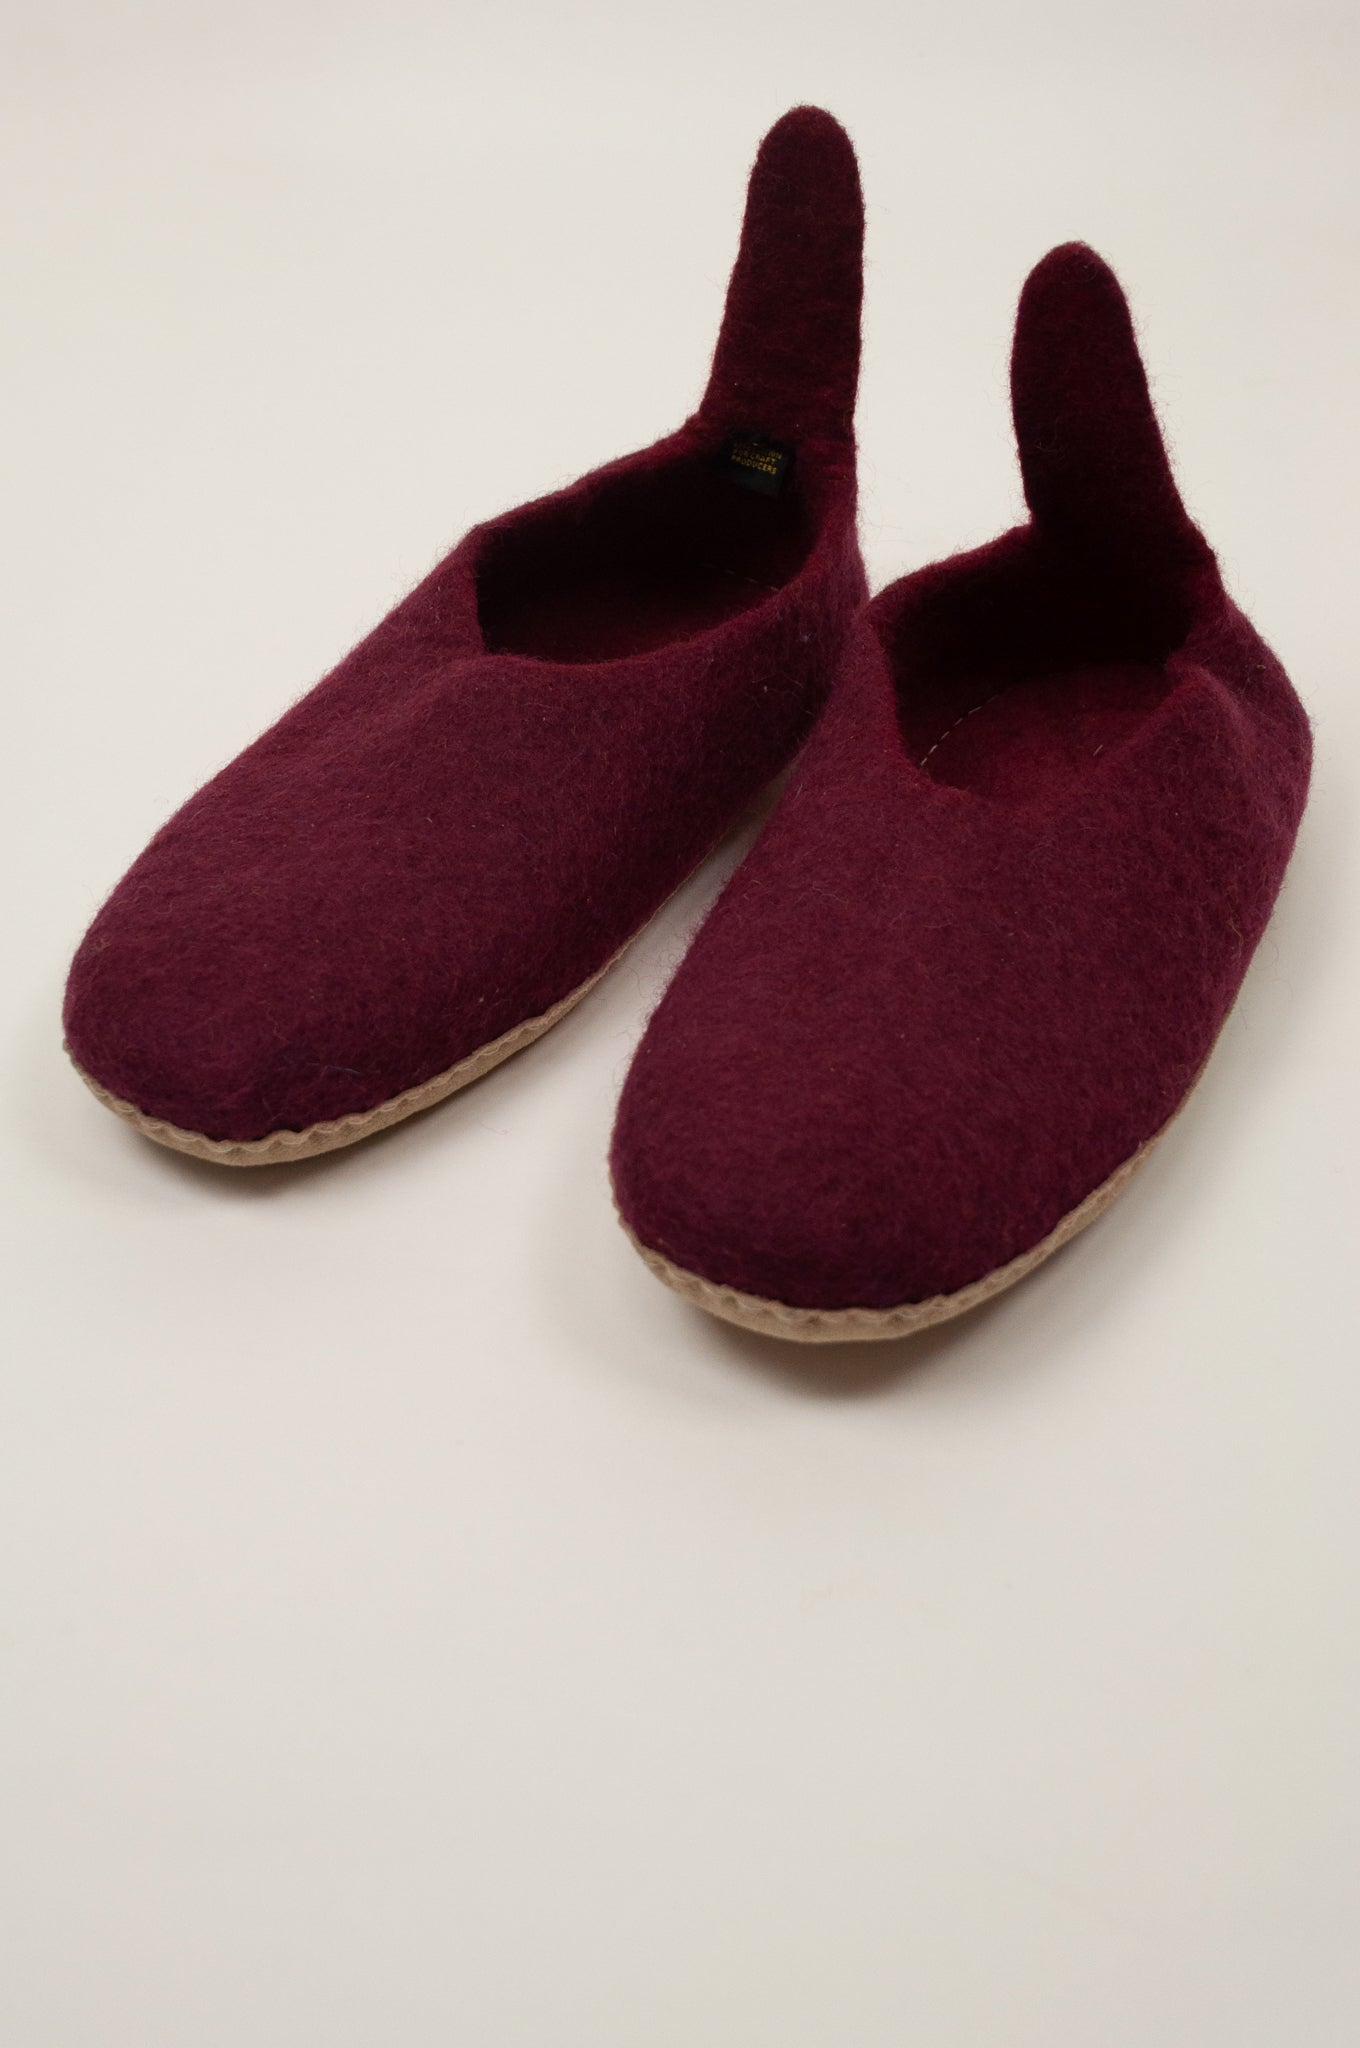 Juniper Hearth pure wool felt fair trade slippers pull on style in Burgundy red.